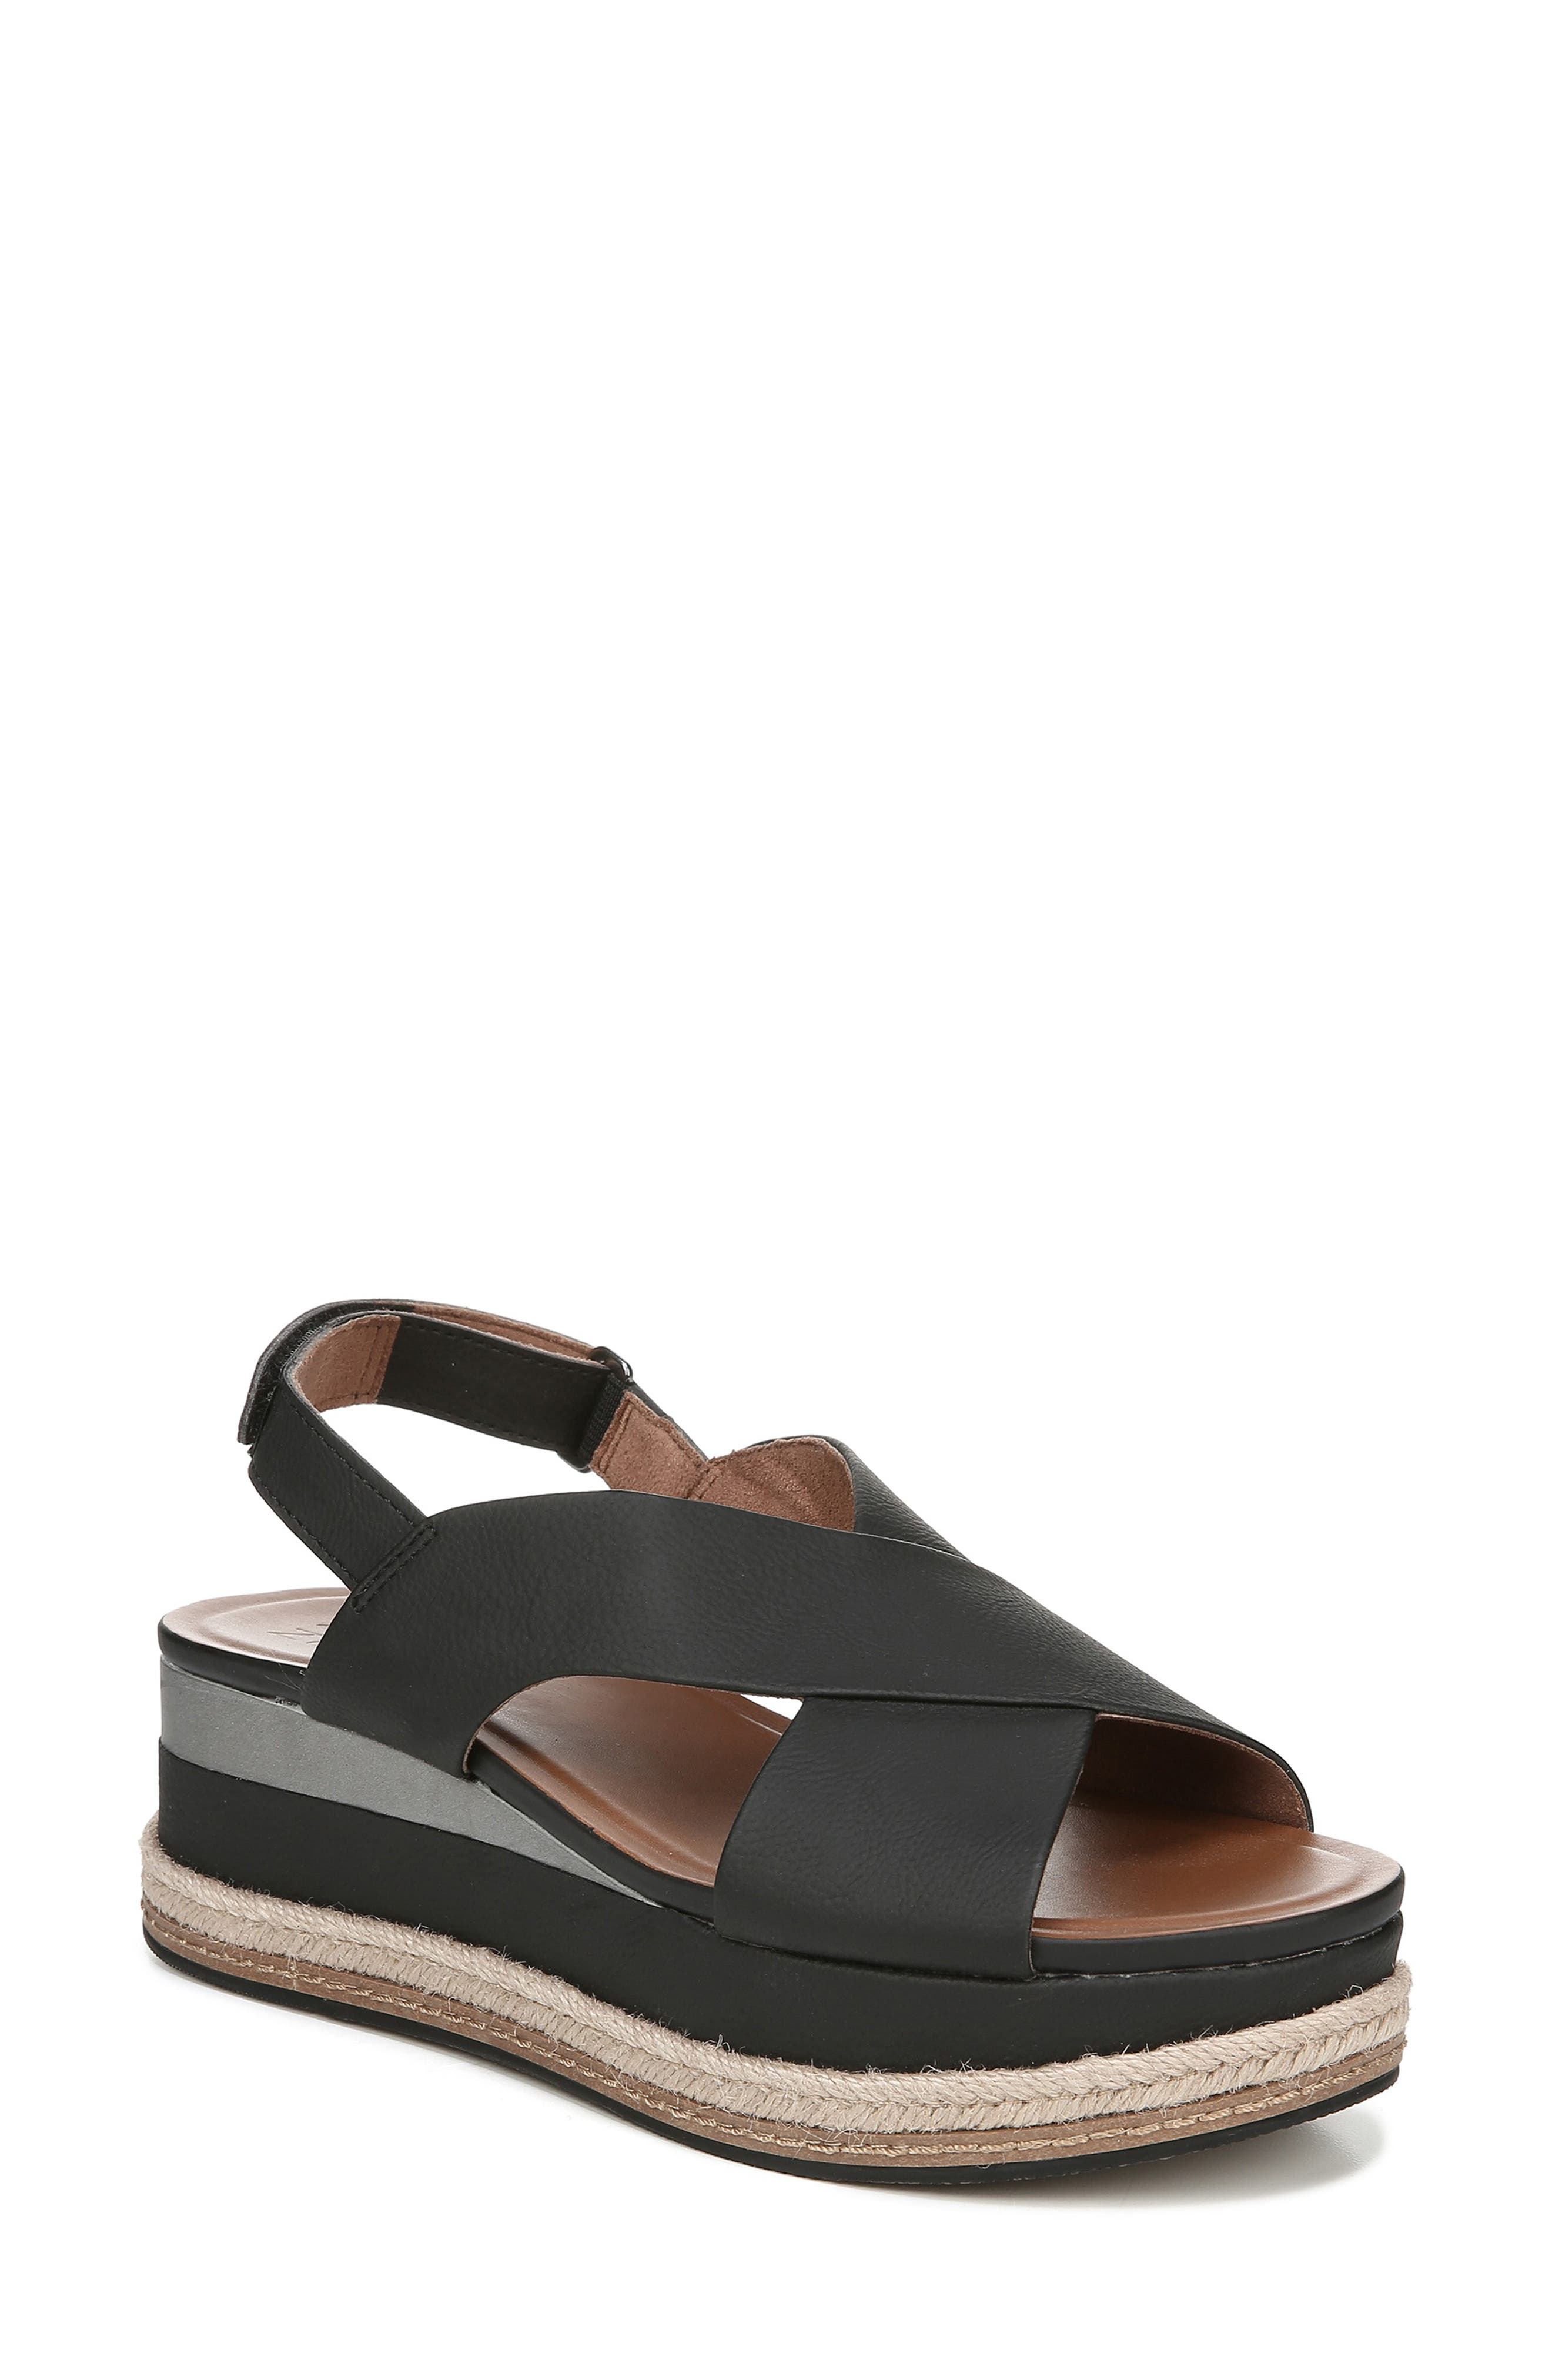 Baya Espadrille Wedge Sandal, Main, color, BLACK NUBUCK LEATHER